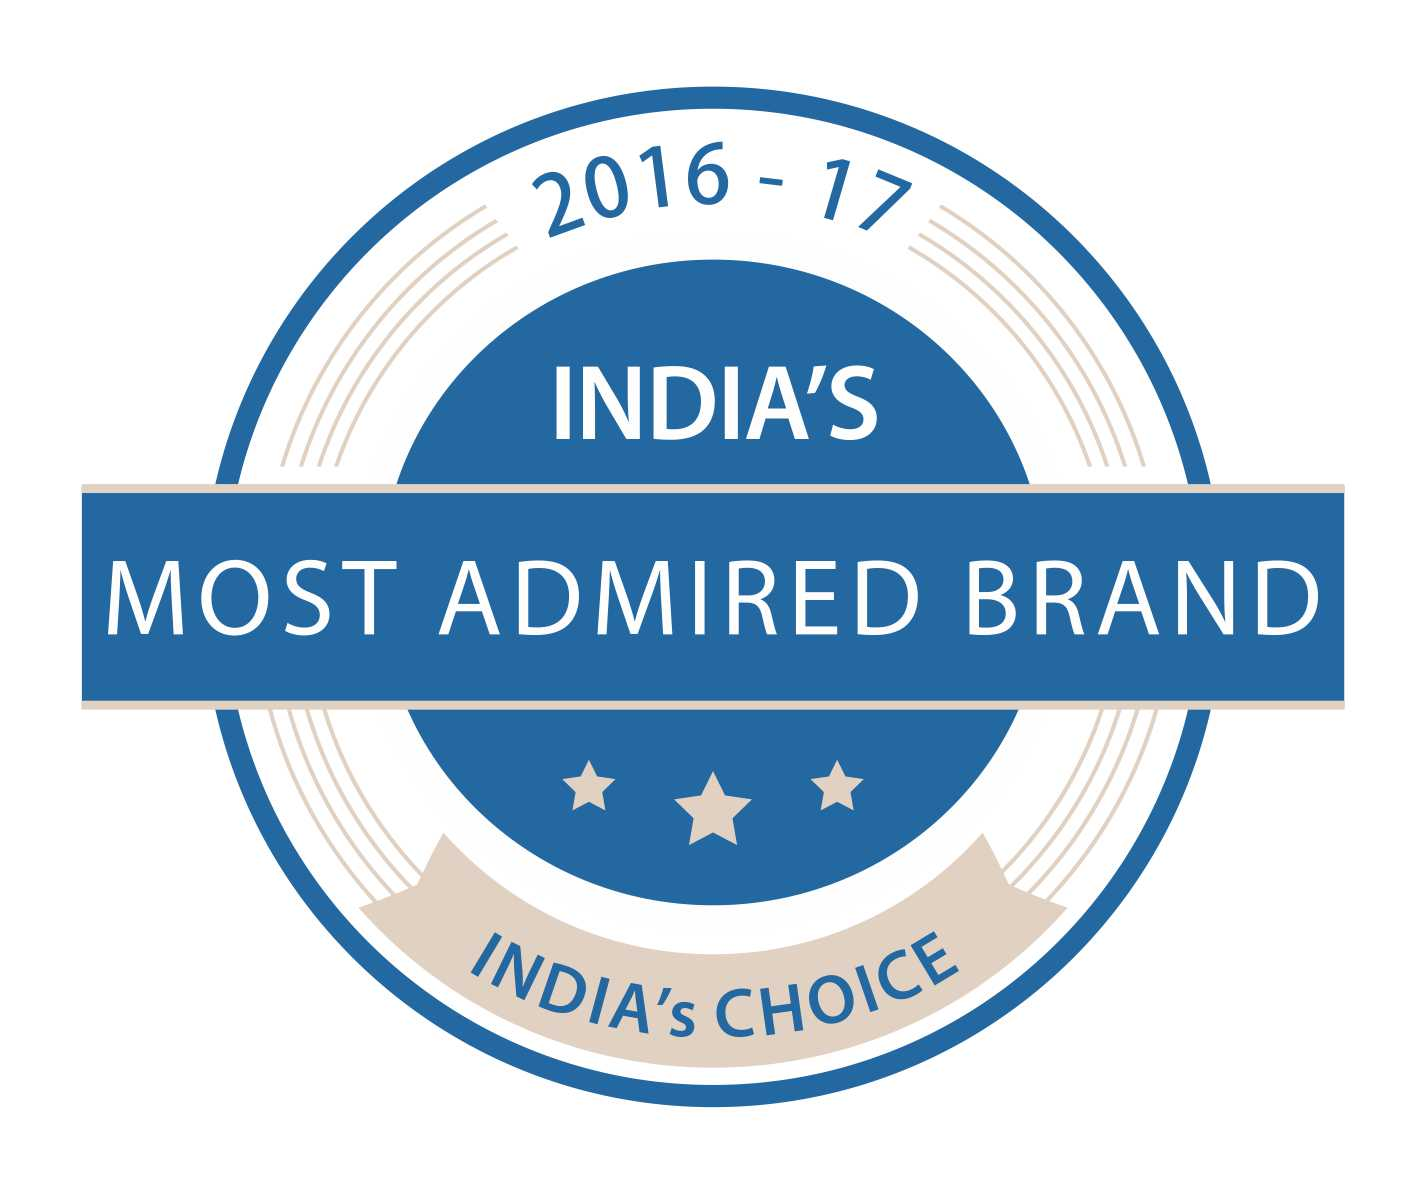 Planetcast India's Most Admired Brand 16-17